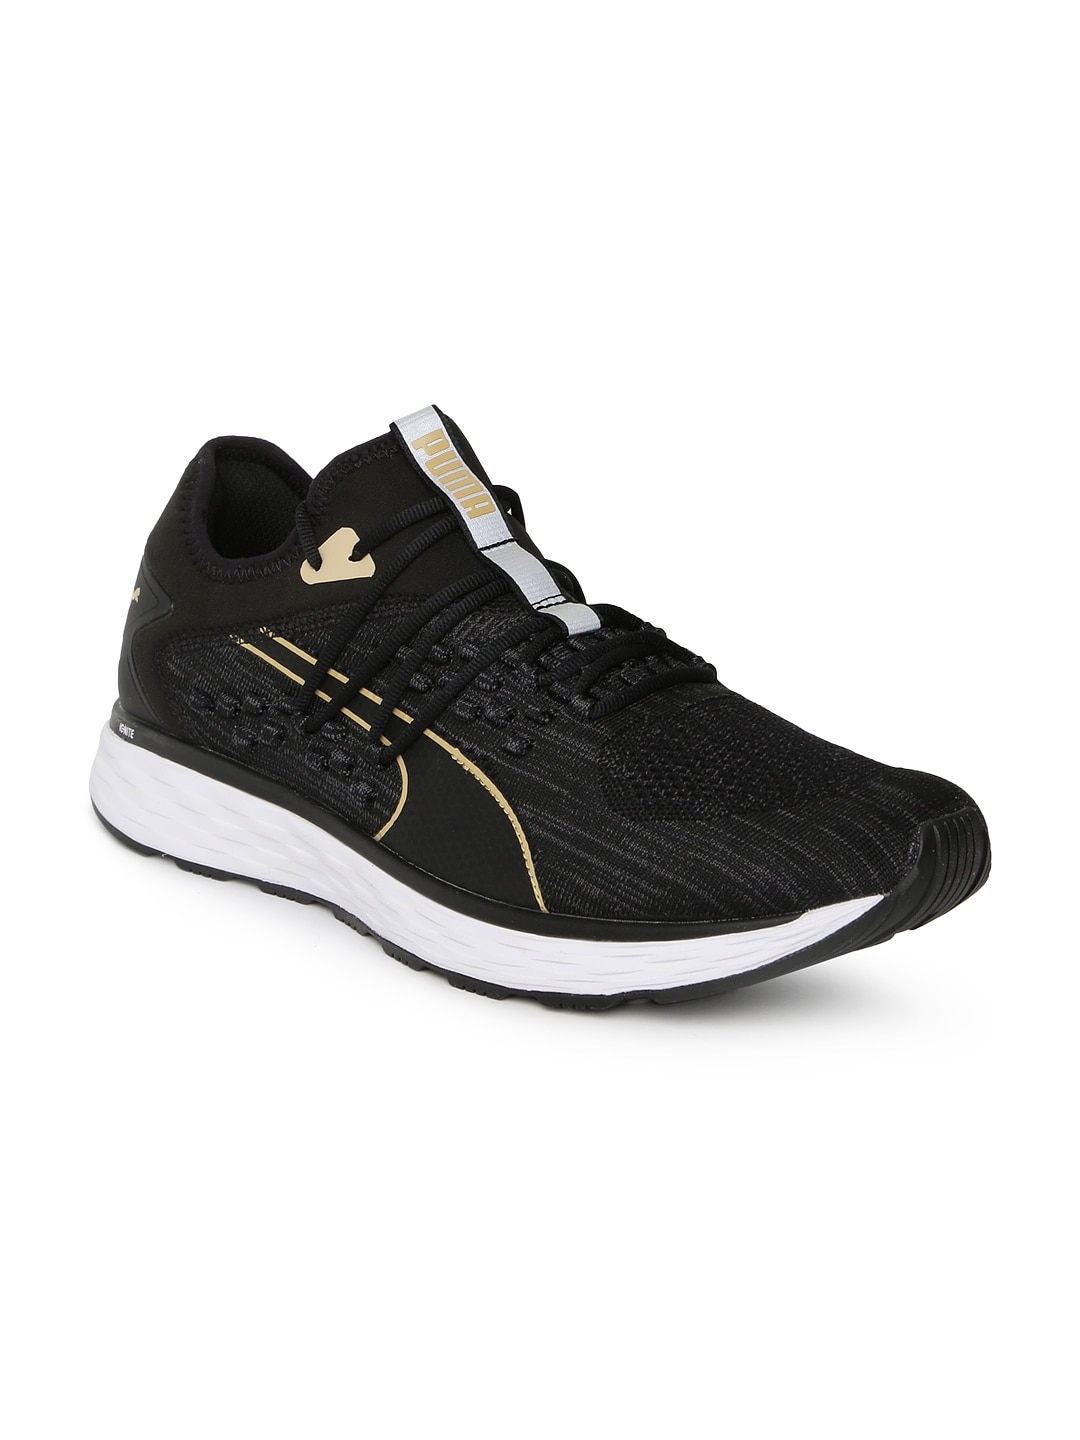 Puma Shoes - Buy Puma Shoes for Men   Women Online in India b8d78eff7